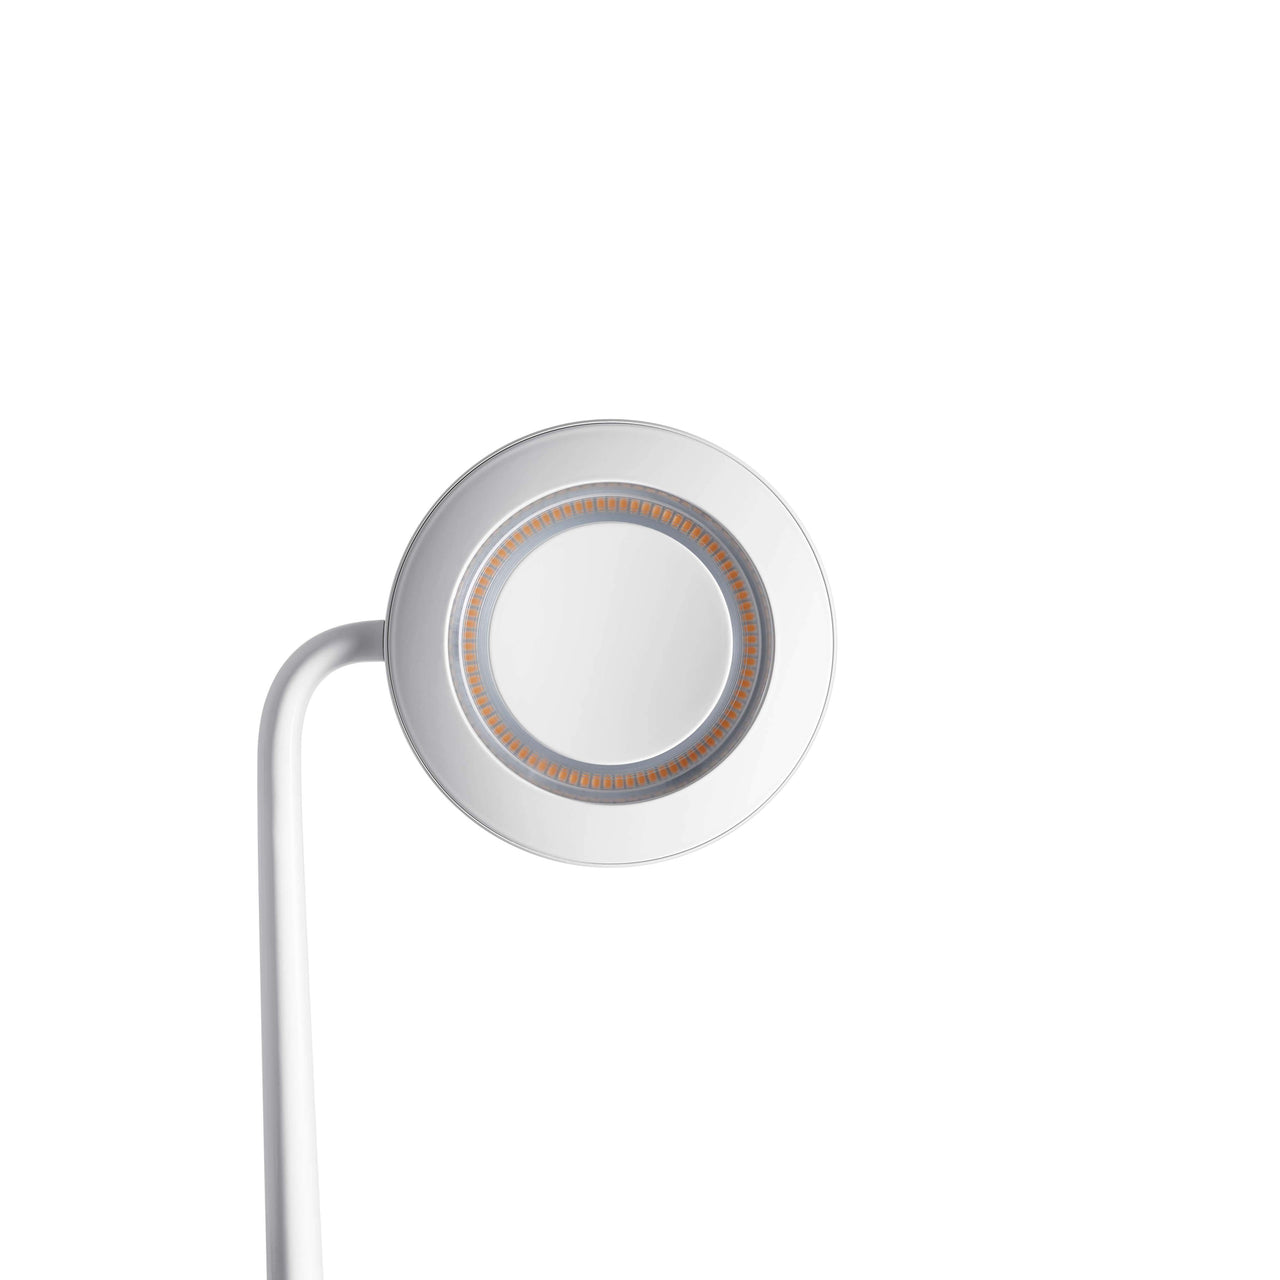 Pixo Optical Task Light + USB Charging Port